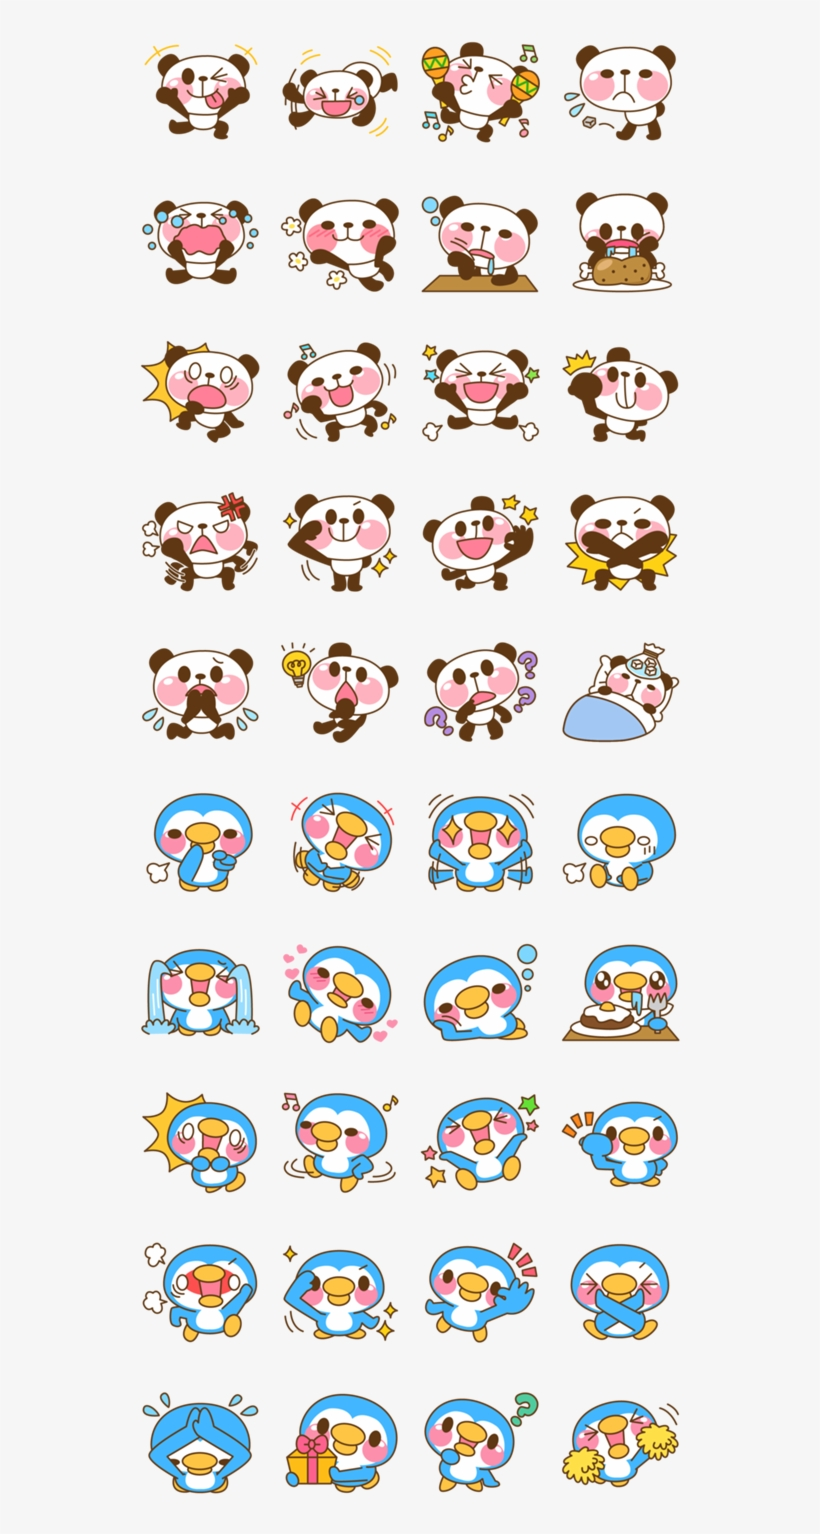 graphic regarding Printable Emoji Stickers named Pandas And Birds Kawaii Stickers, Lovely Stickers, Emoji